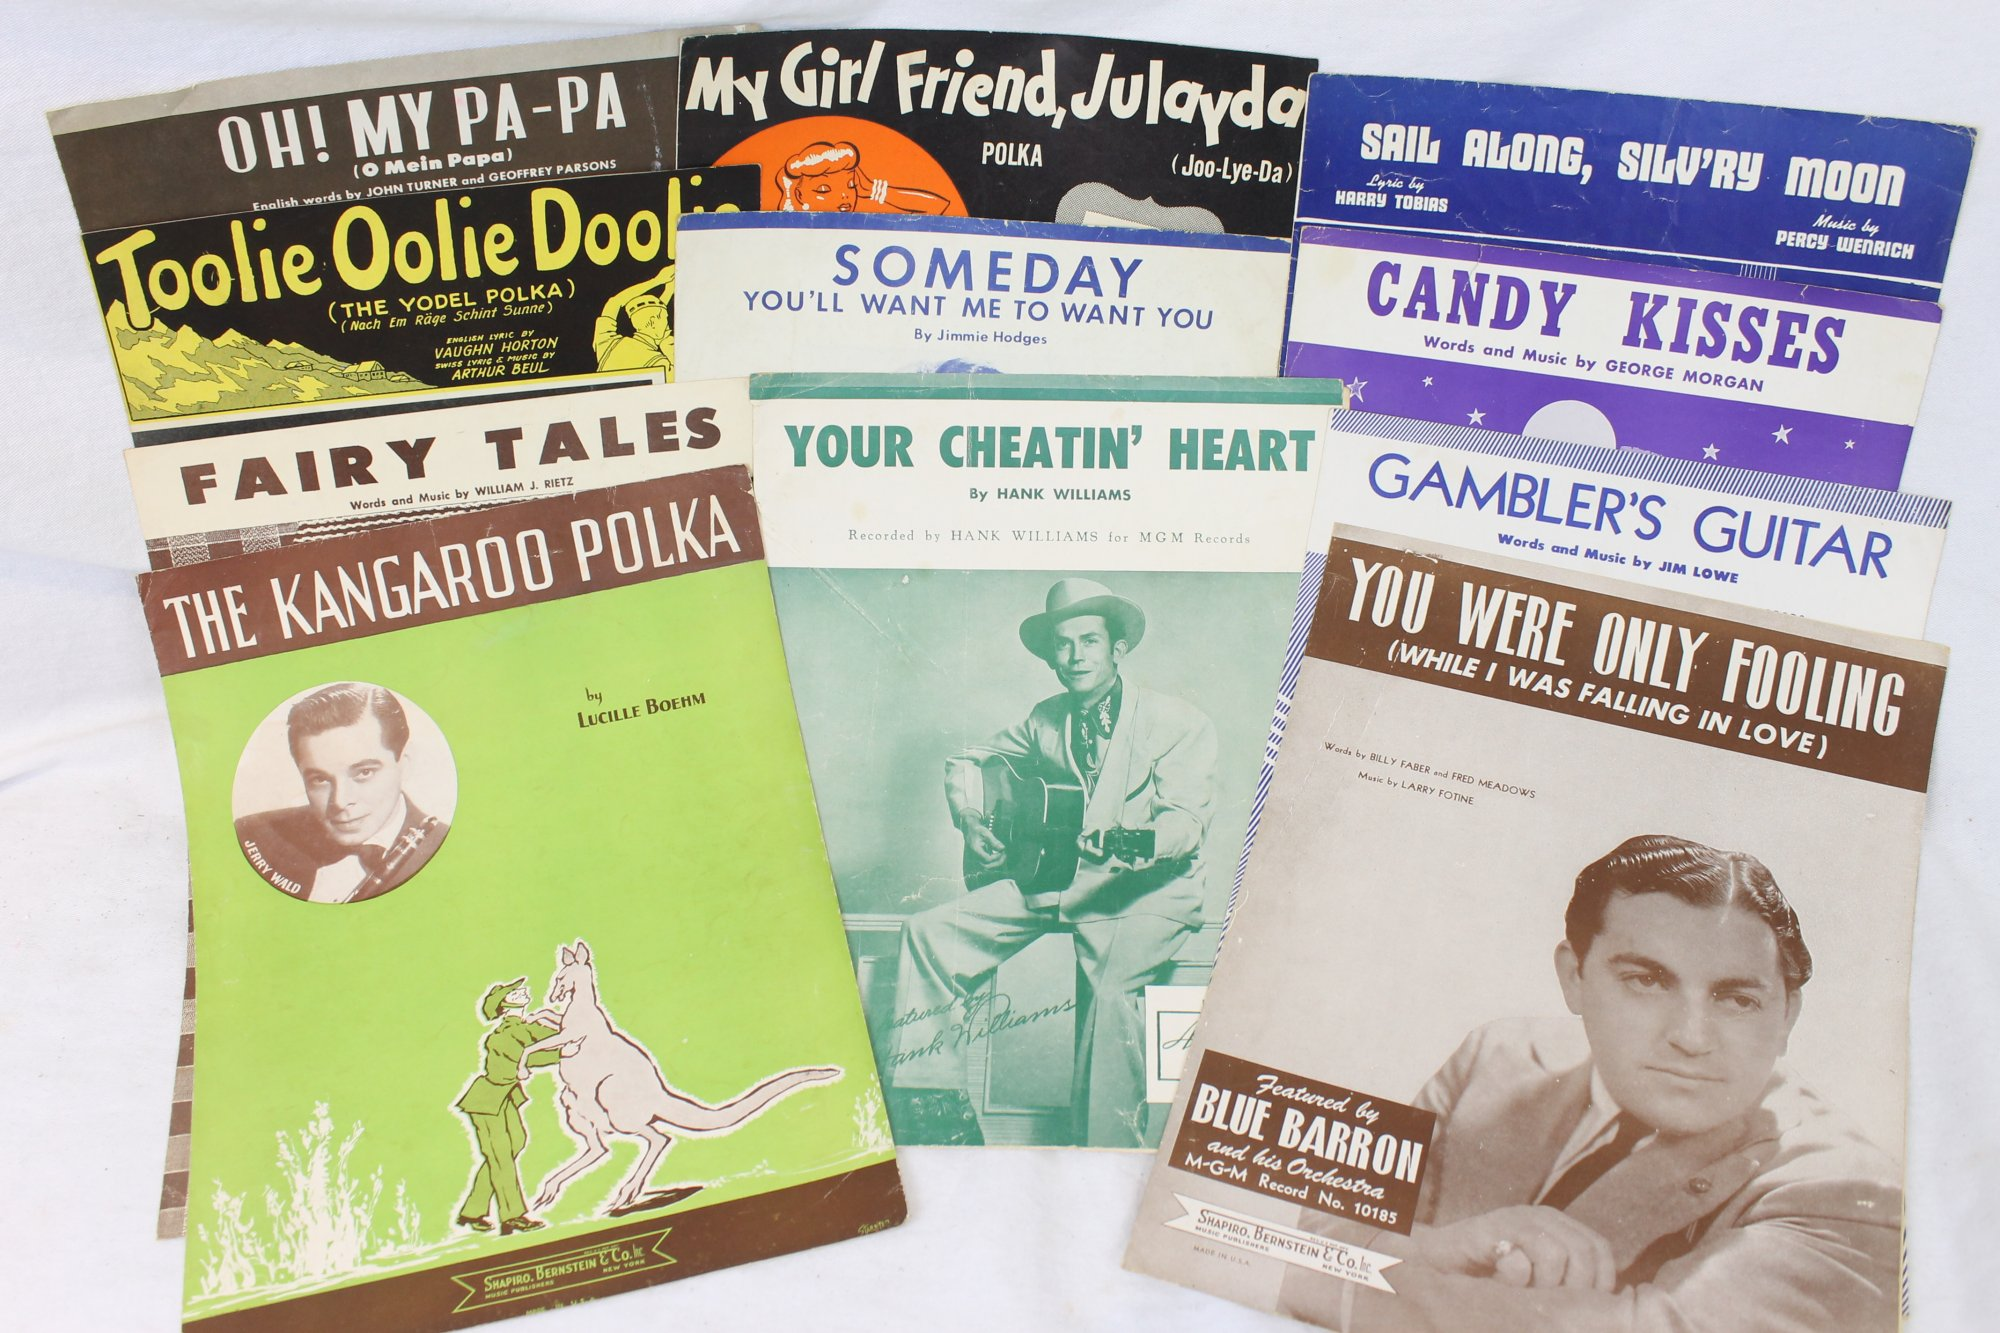 Lot of 25 Used Piano Music Books and Sheets - American Songbook